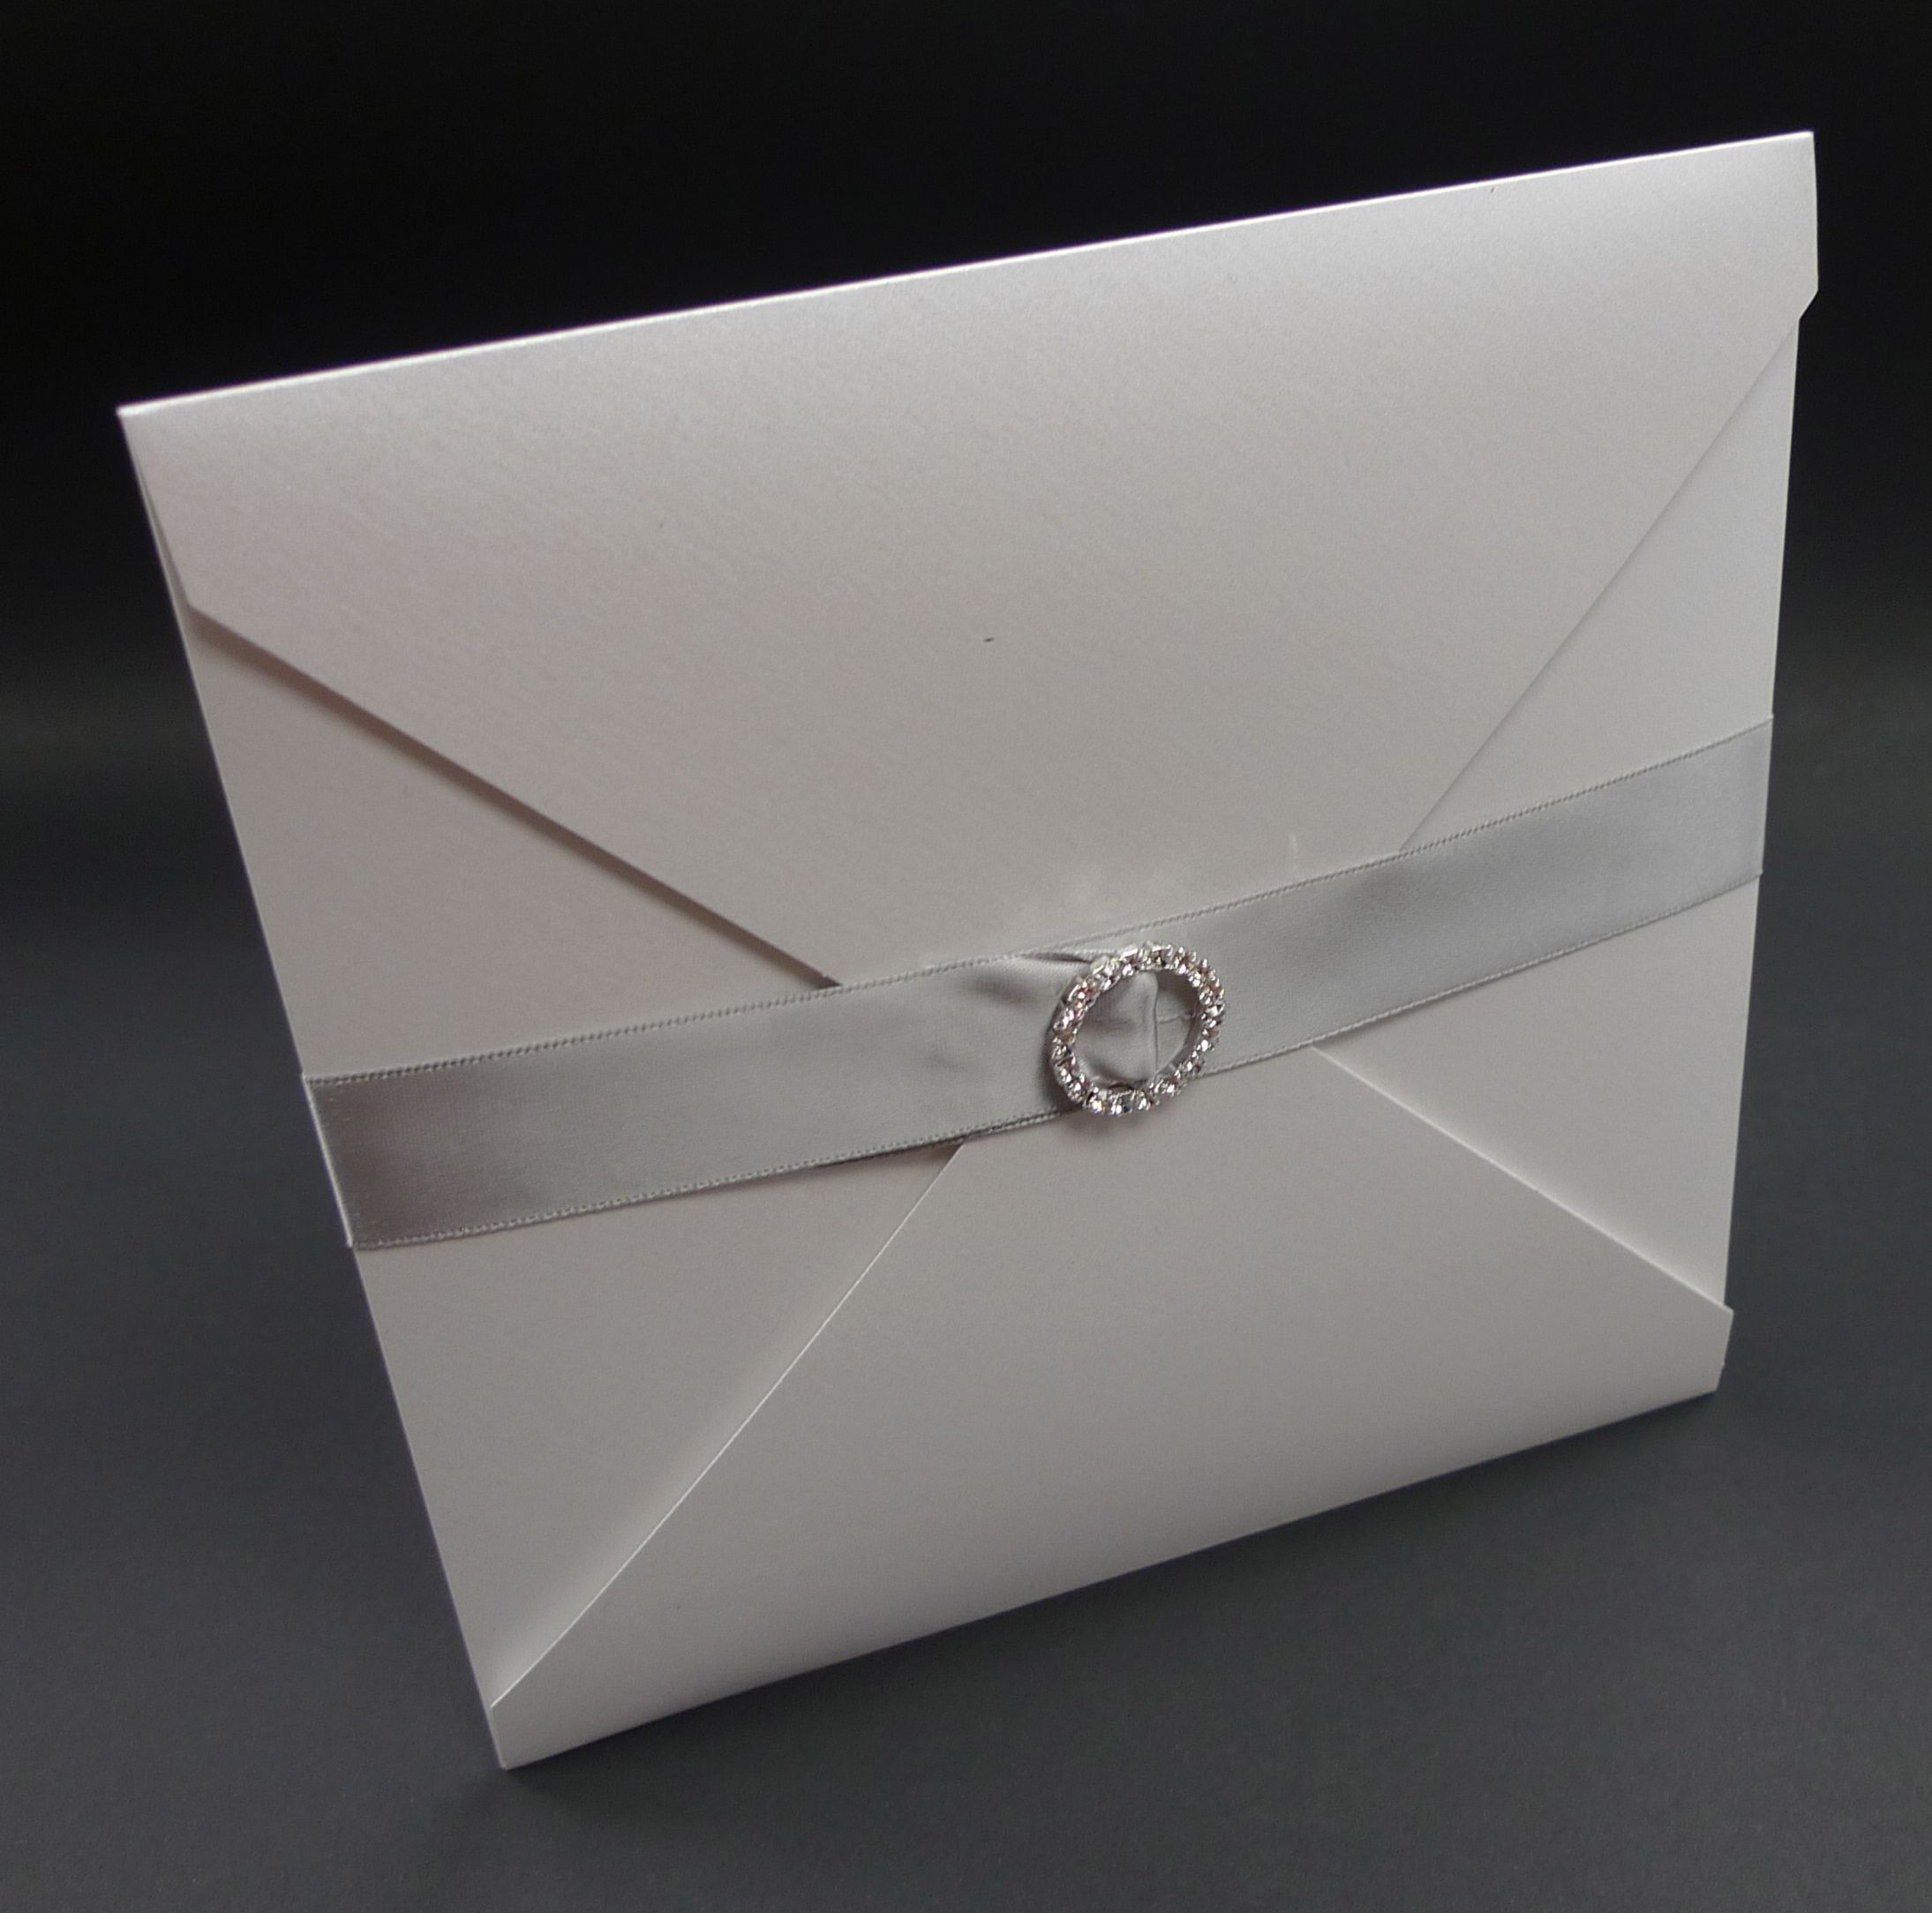 Elegant corporate invitation gift wrapping creations pinterest elegant corporate invitation corporate invitationinvitegift wrappinggift wrapping paperwrapping stopboris Choice Image